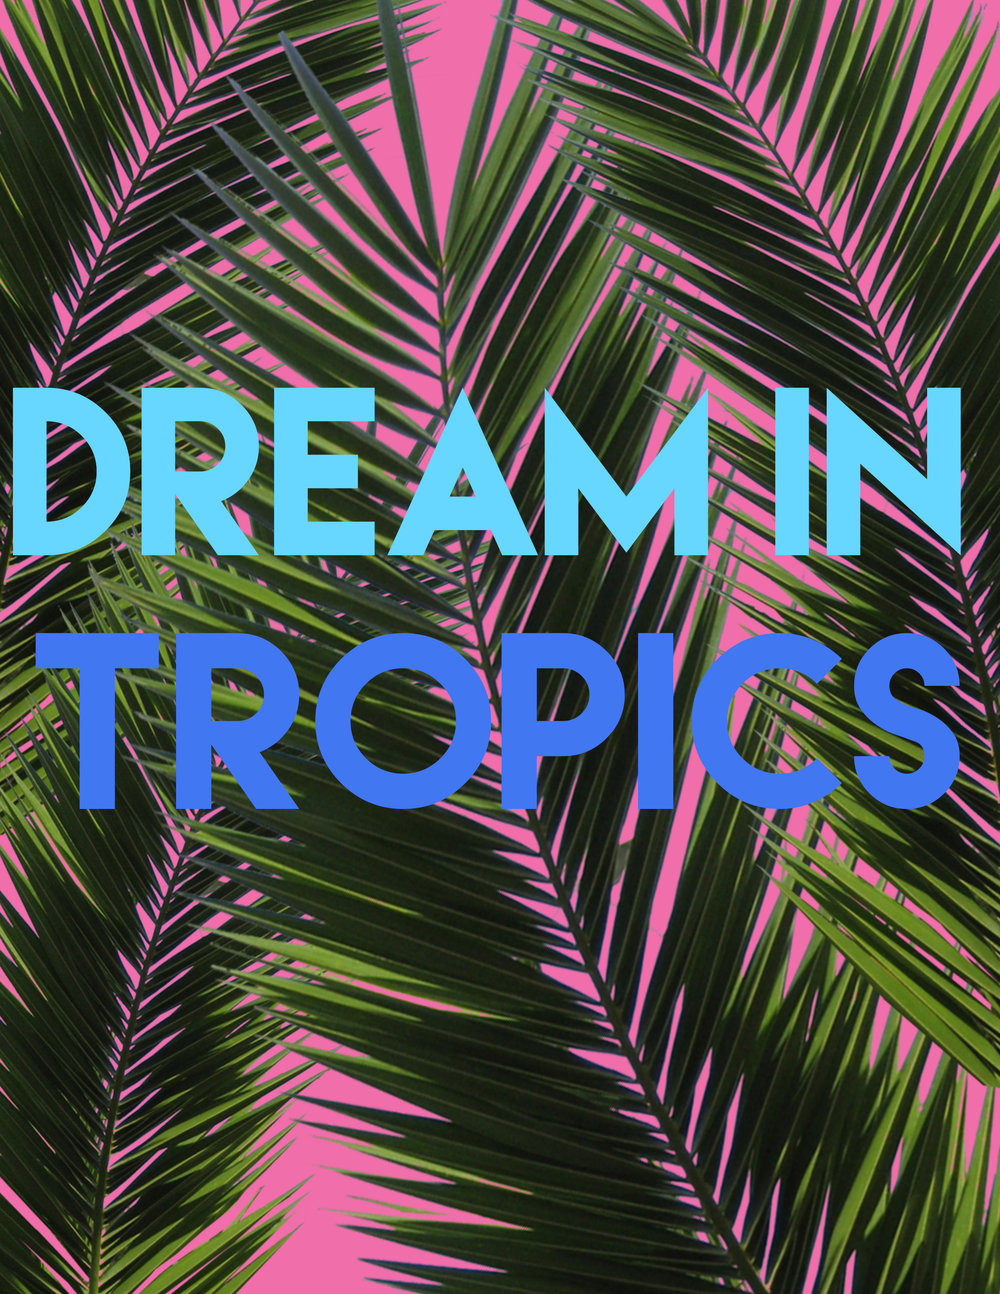 dream in tropics.jpg